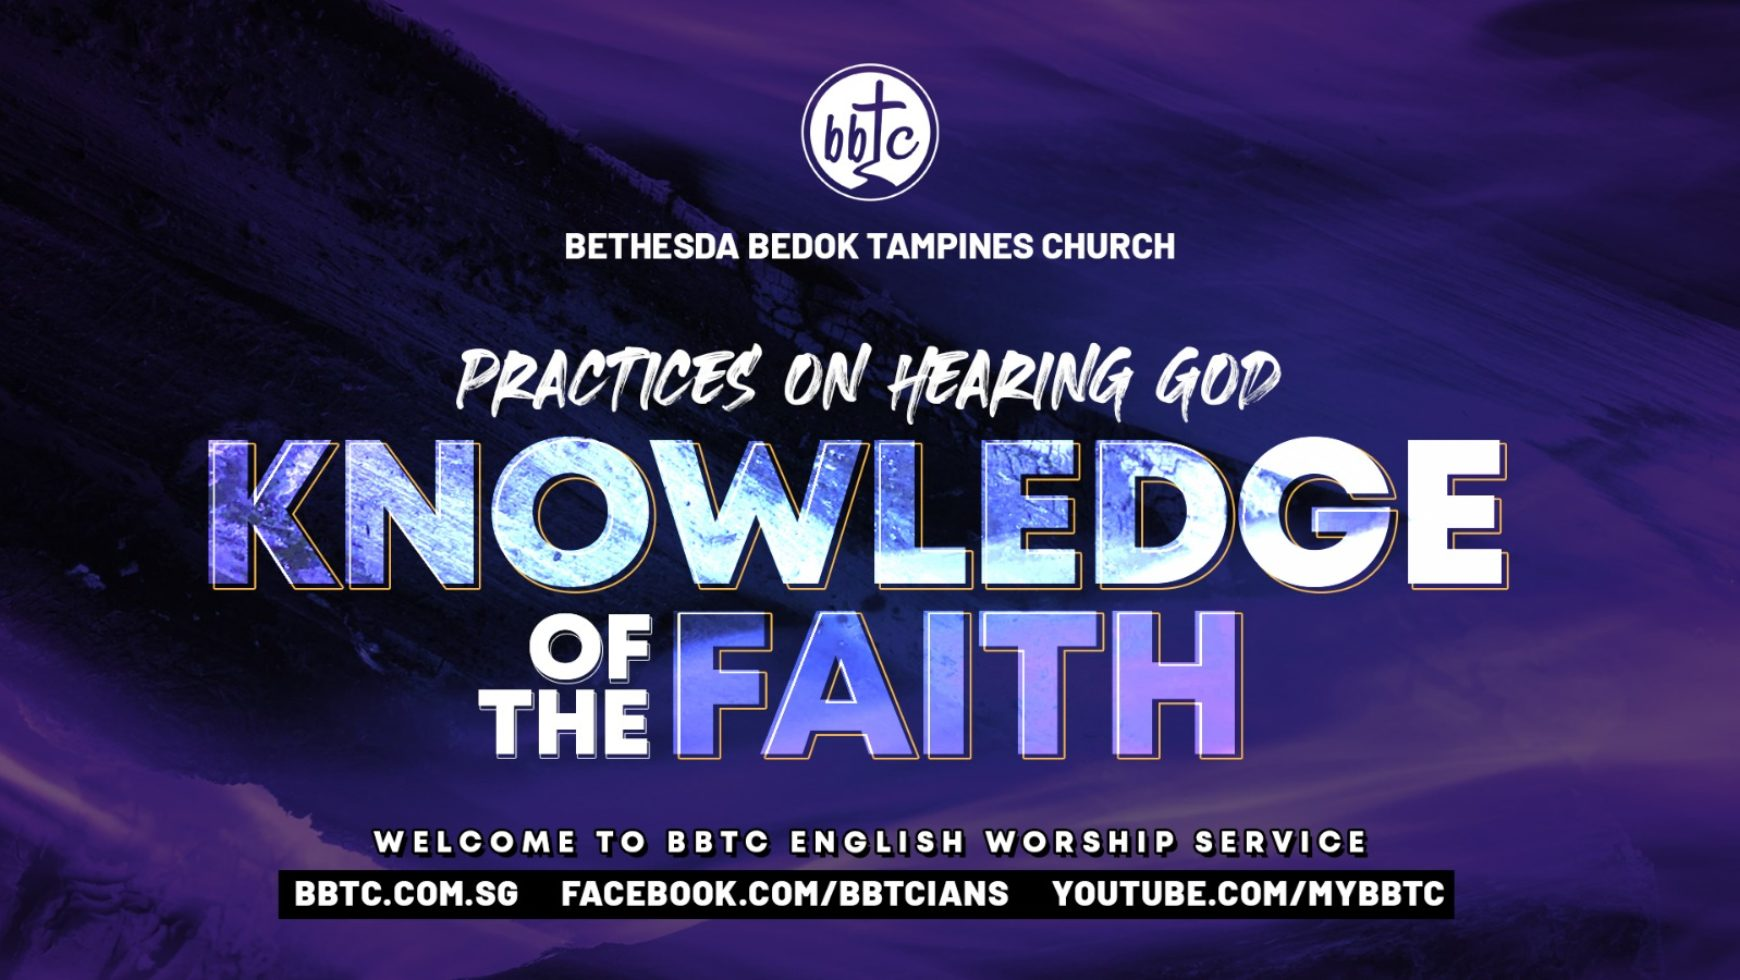 THE KNOWLEDGE OF OUR FAITH